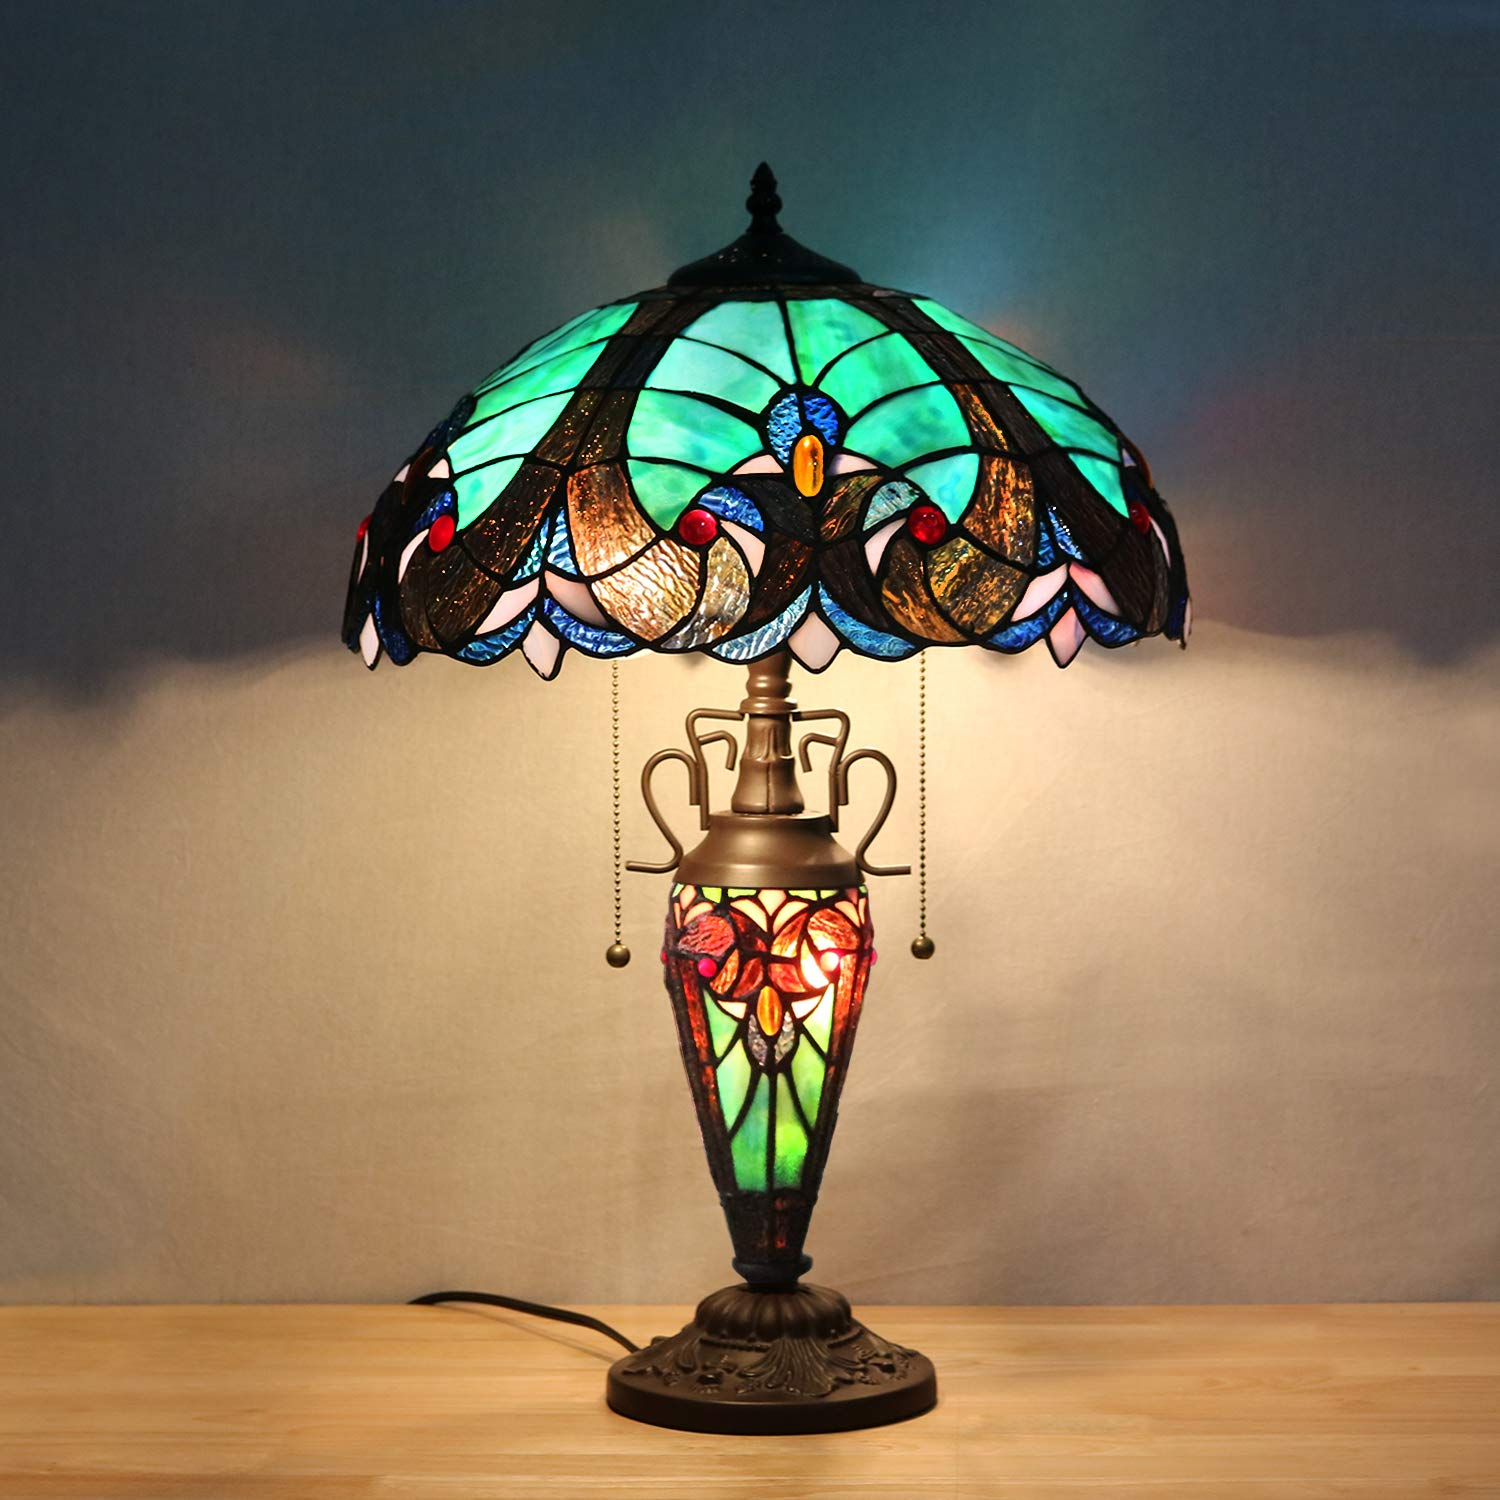 Amazon.com: JOO LIFE Tiffany Style Table Lamp 3 Light Double ...